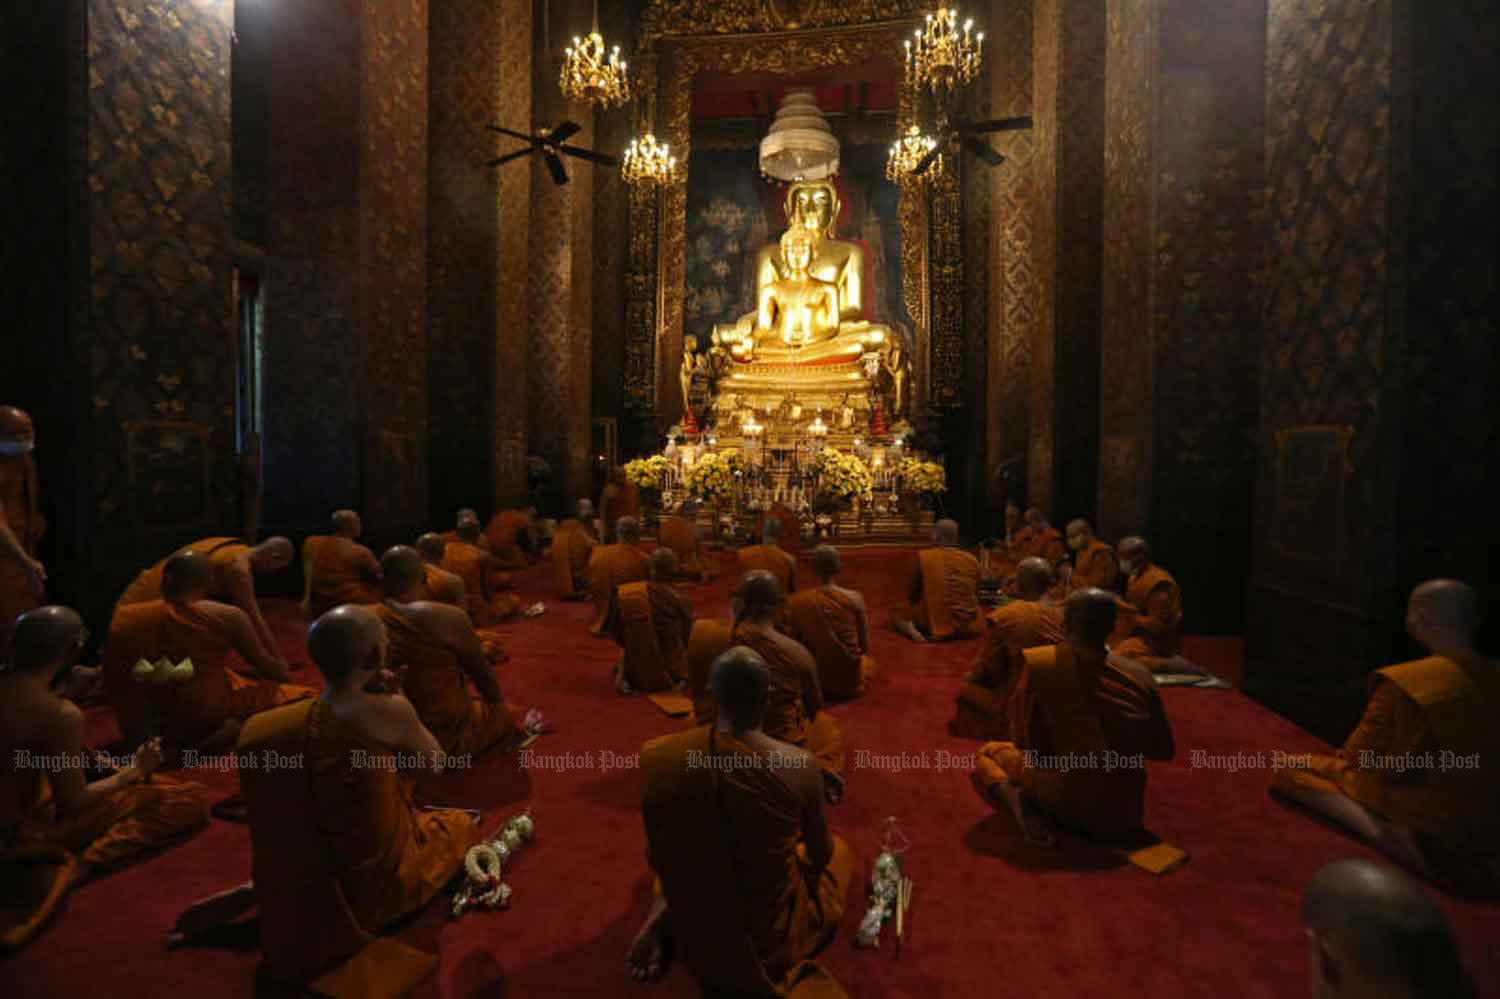 Monks at Wat Bowon Niwet in Bangkok prepare to conduct a prayer inside the temple's ubosot to mark Visakha Bucha Day on Wednesday night. The temple live-streamed the ceremony, including a candlelight vigil, so people could join the activity in their homes as part of measures to curb the spread of Covid-19. (Photo by Varuth Hirunyatheb)